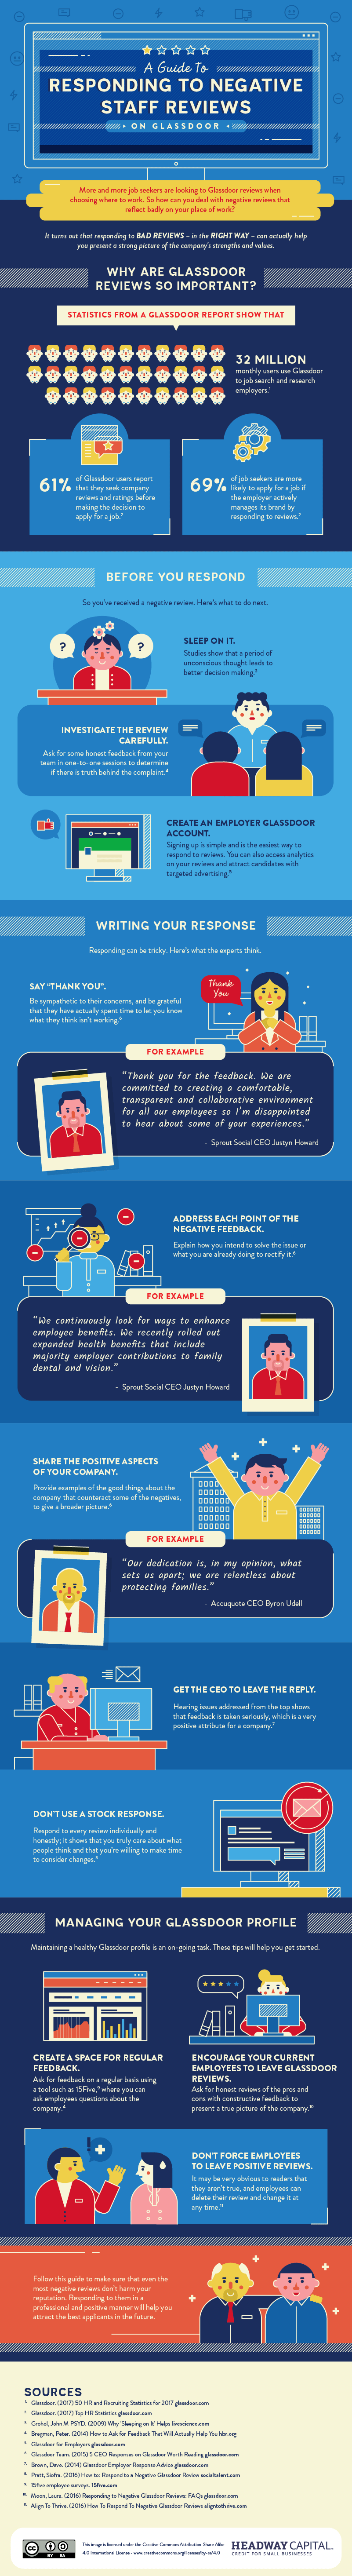 infographic about how you should react to negative reviews on Glassdoor